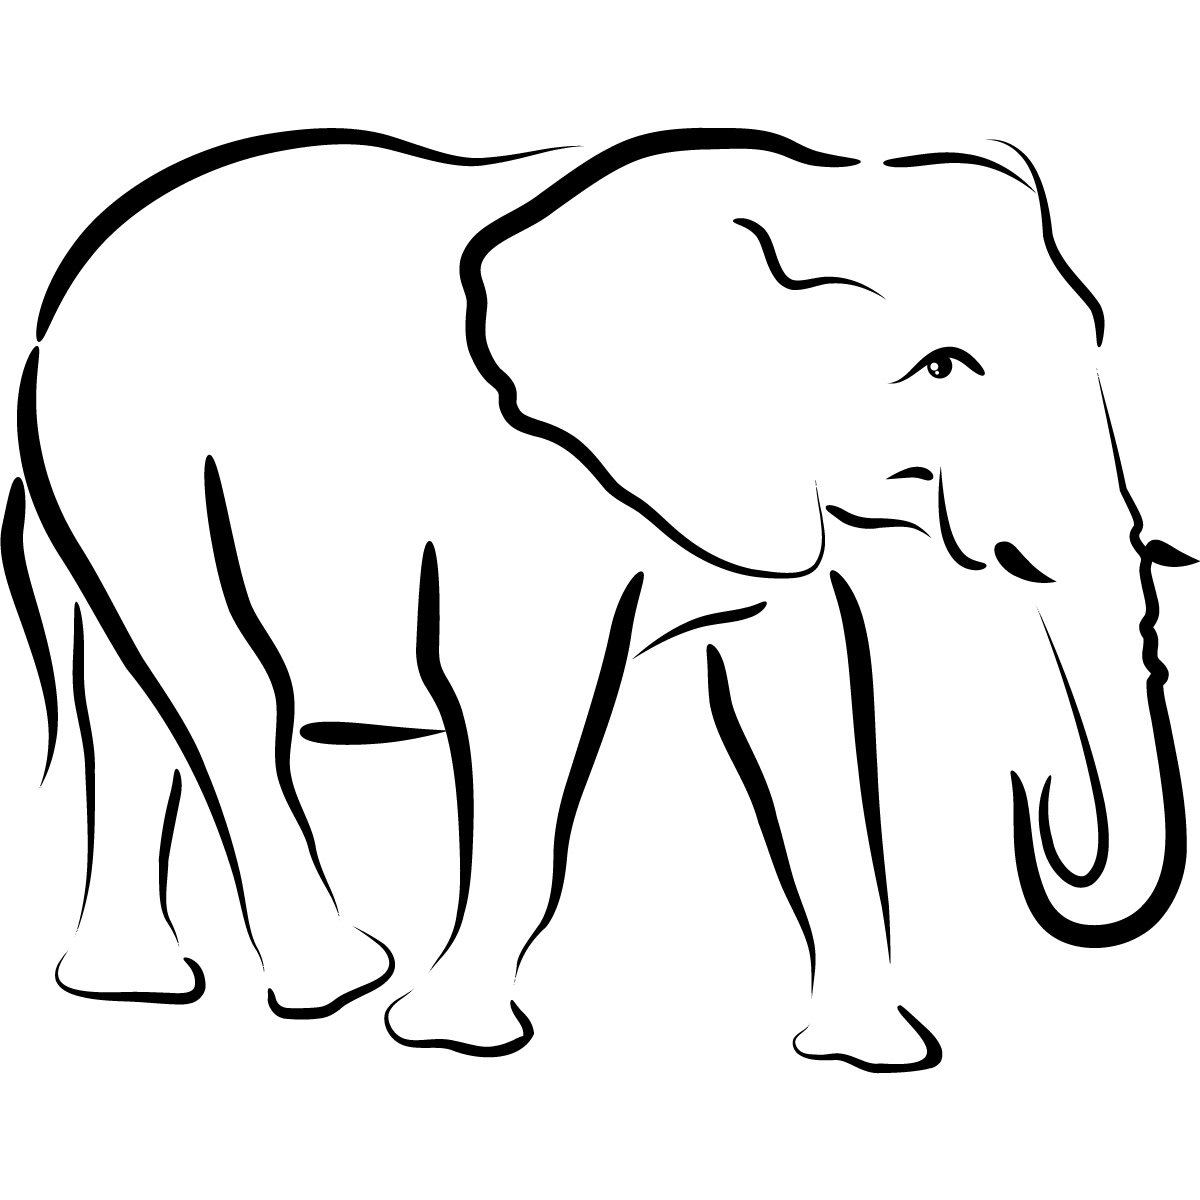 Elephant Line Drawing - ClipArt Best